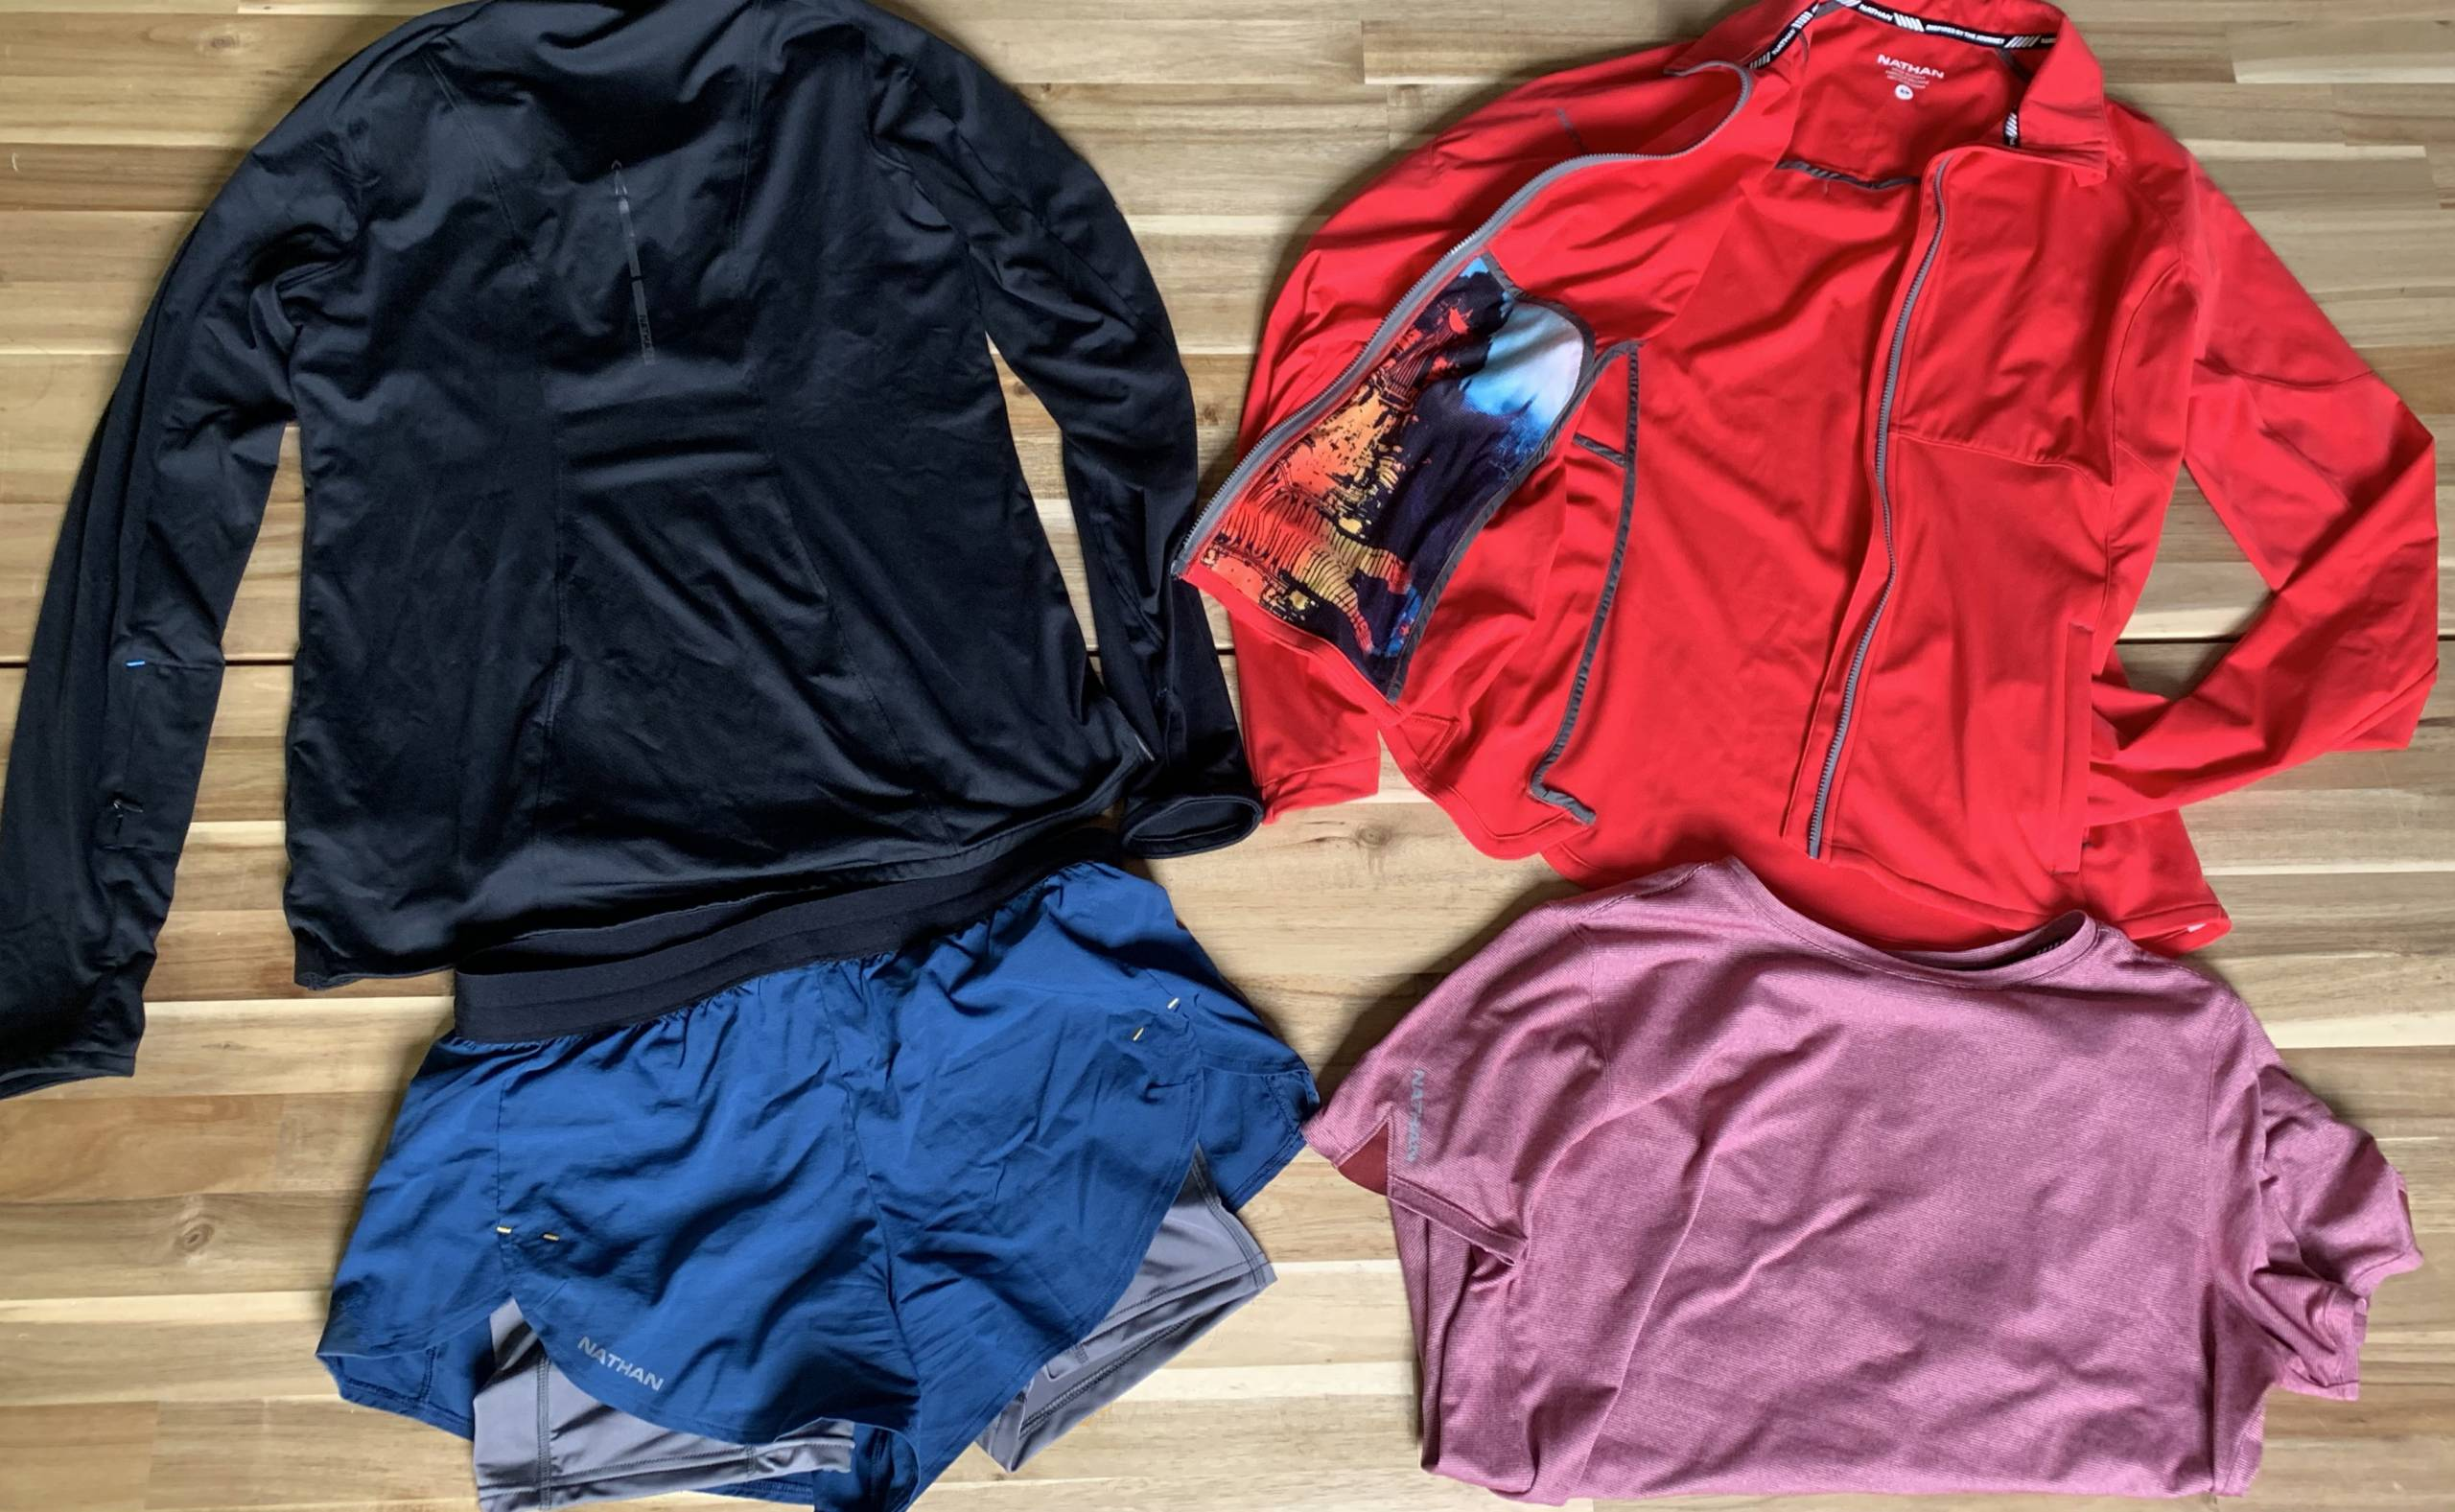 clockwise: a long sleeve, a jacket, and tee, and a pair of shorts laid out on table